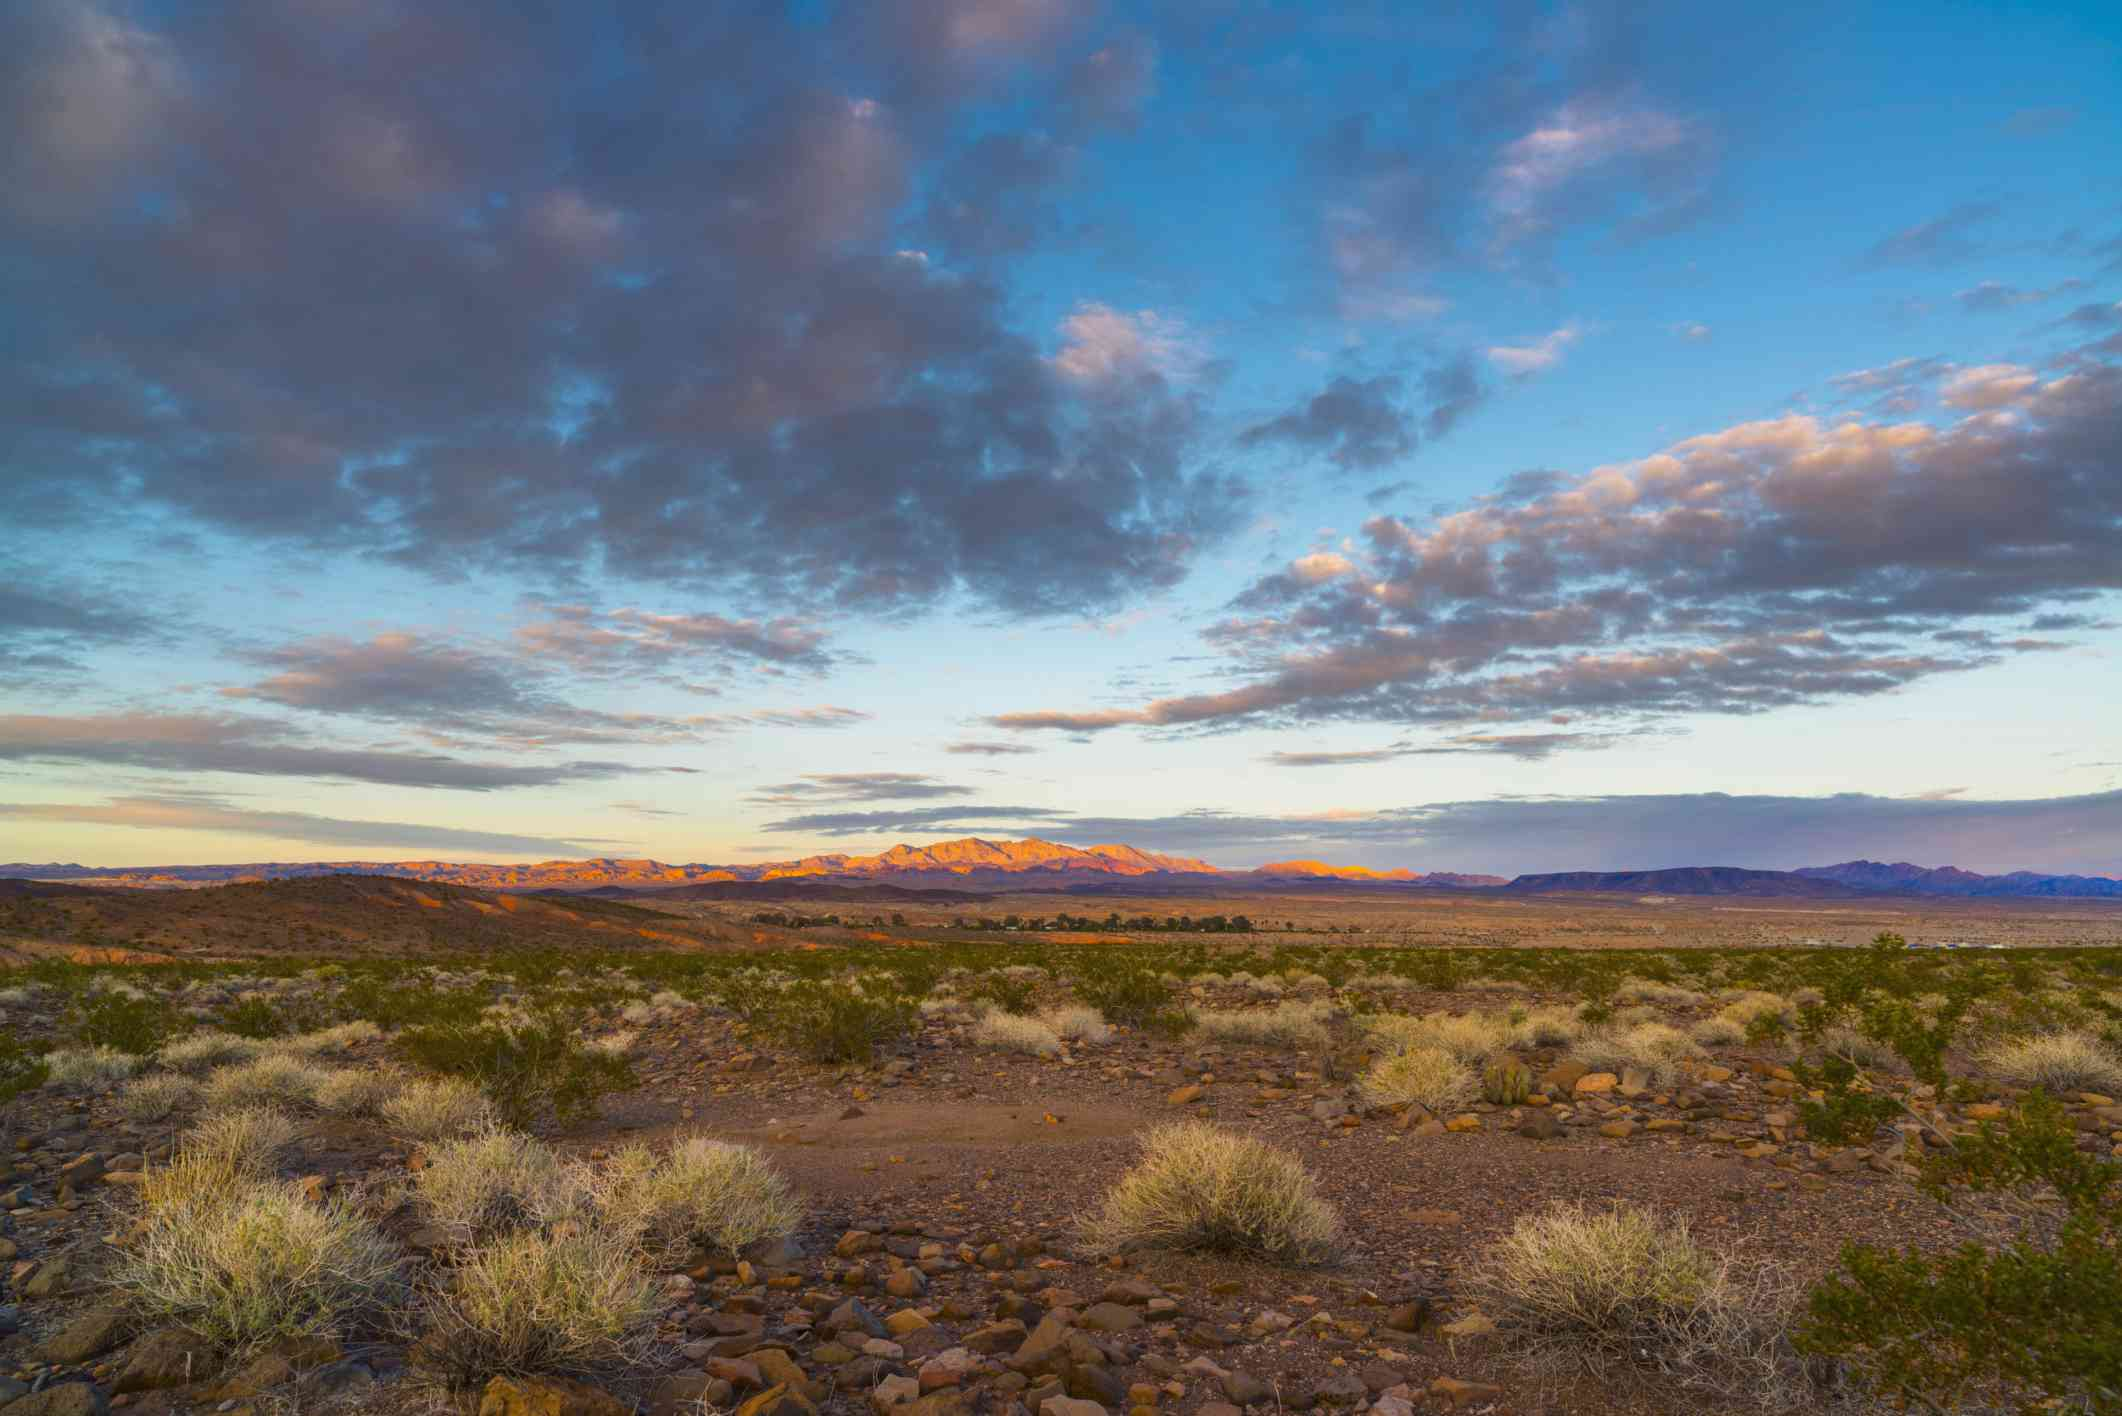 Continental tropical air forms over desert landscapes like in Nevada